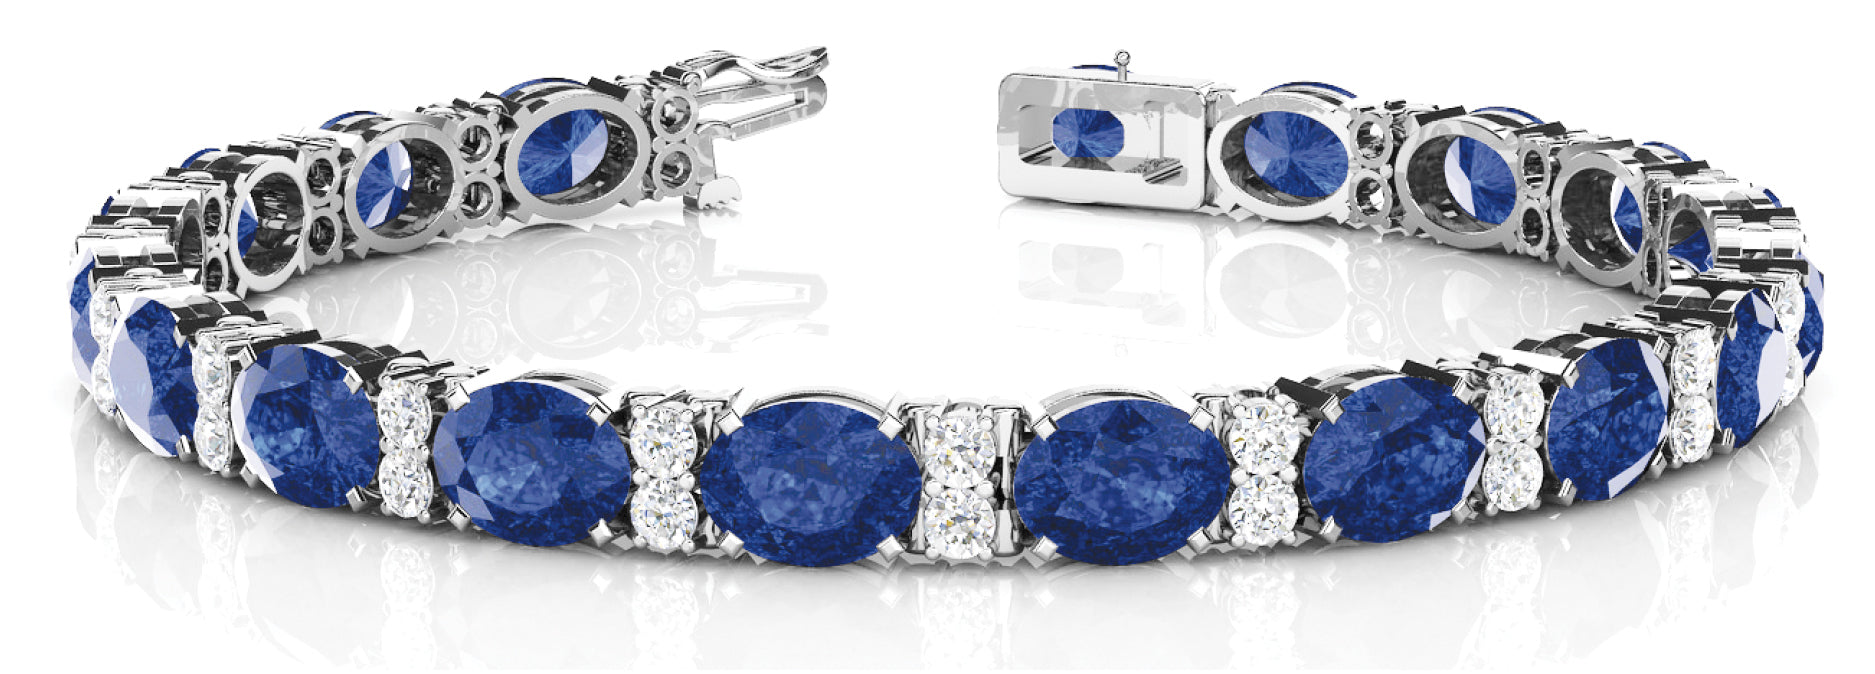 Sapphire 12.24ct & Diamond 0.48ct Bracelet - 14kt White Gold